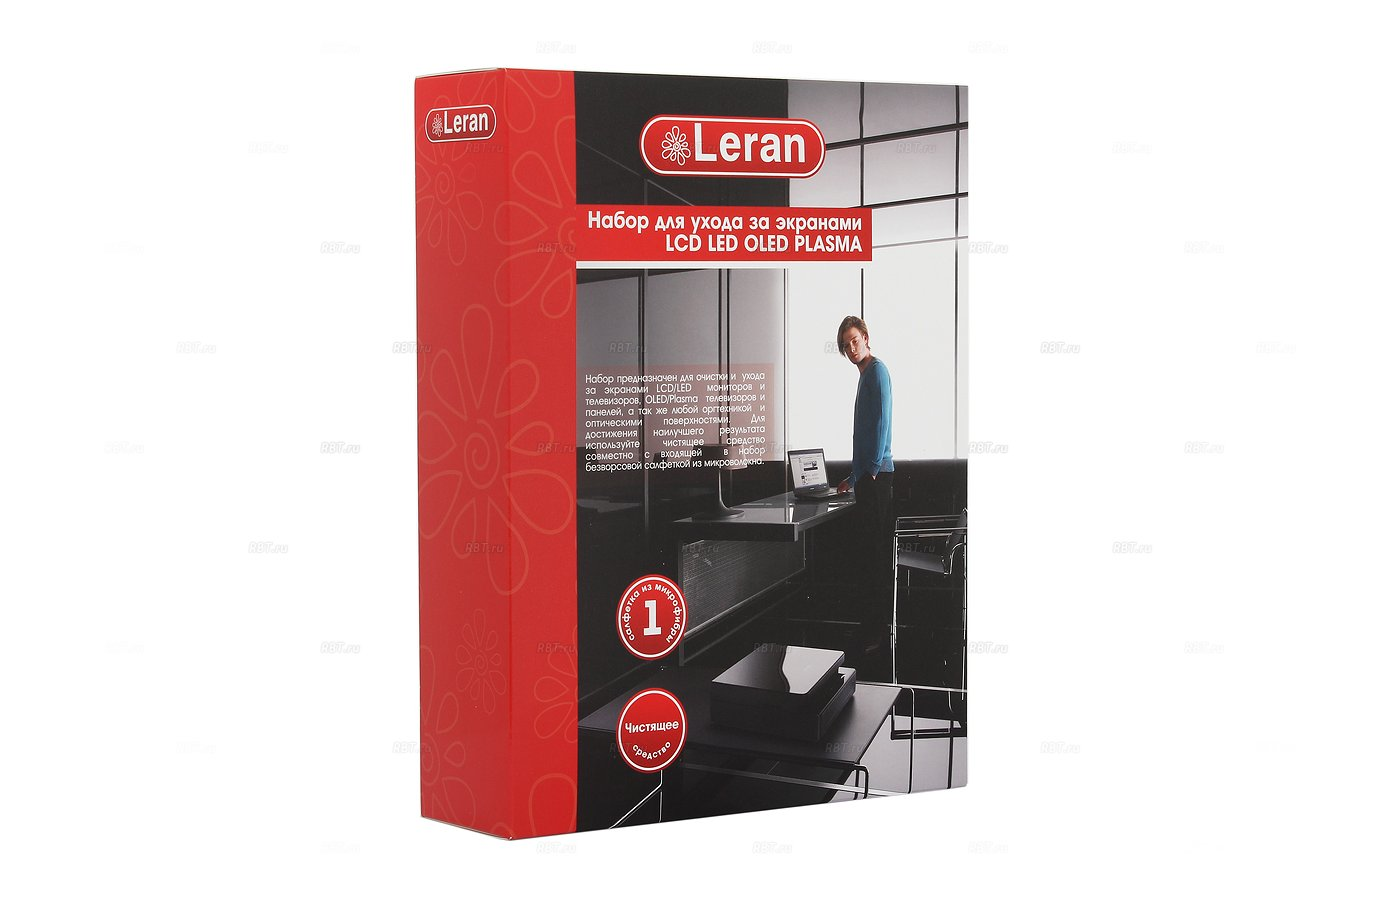 Чистящие средства LERAN L132403 набор д/ухода за экранами LCD/LED/OLED/Plazma